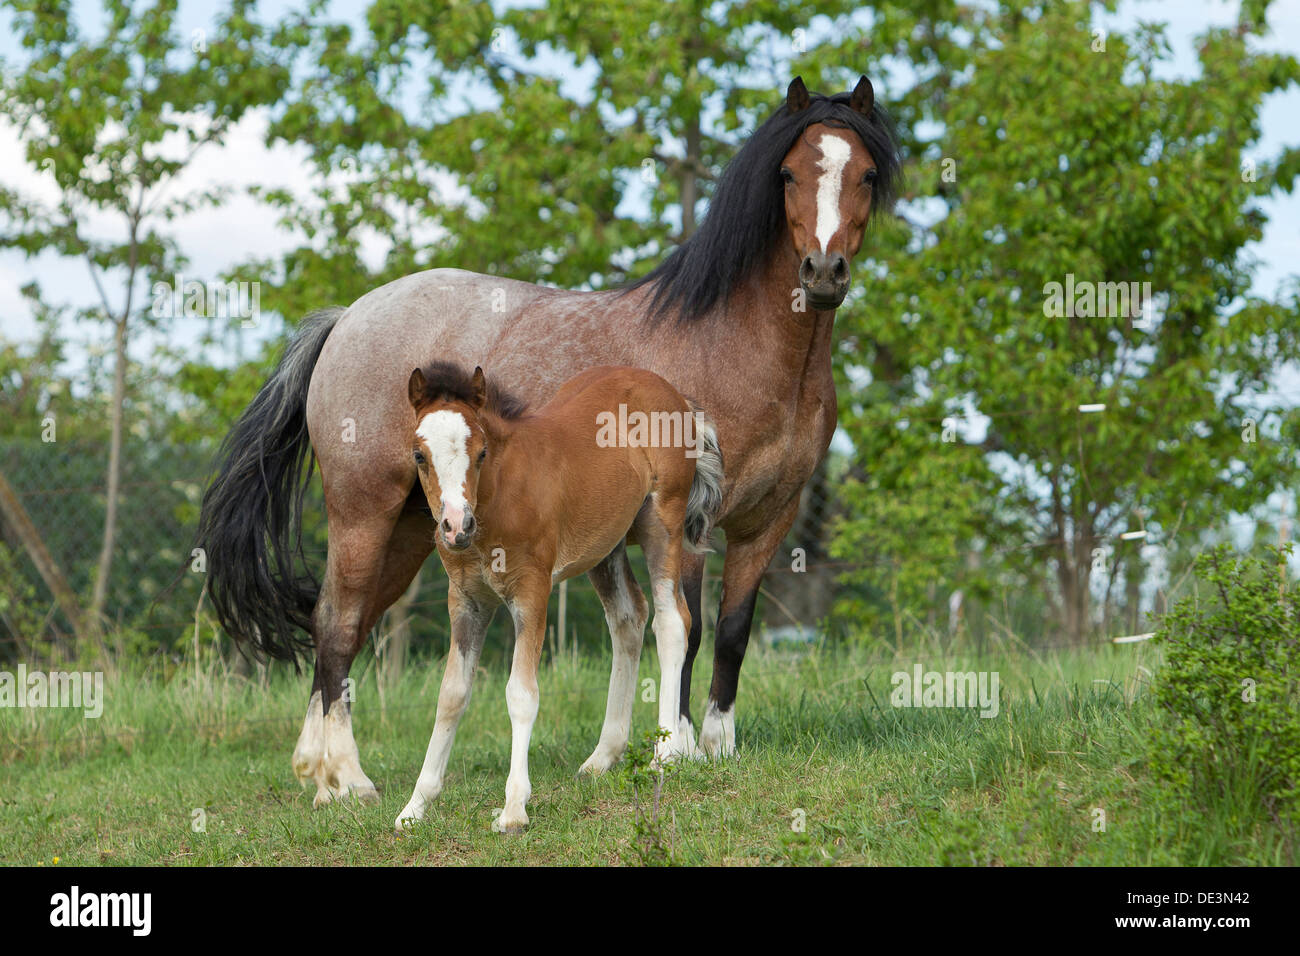 welsh pony section b strawberry roan mare foal standinga